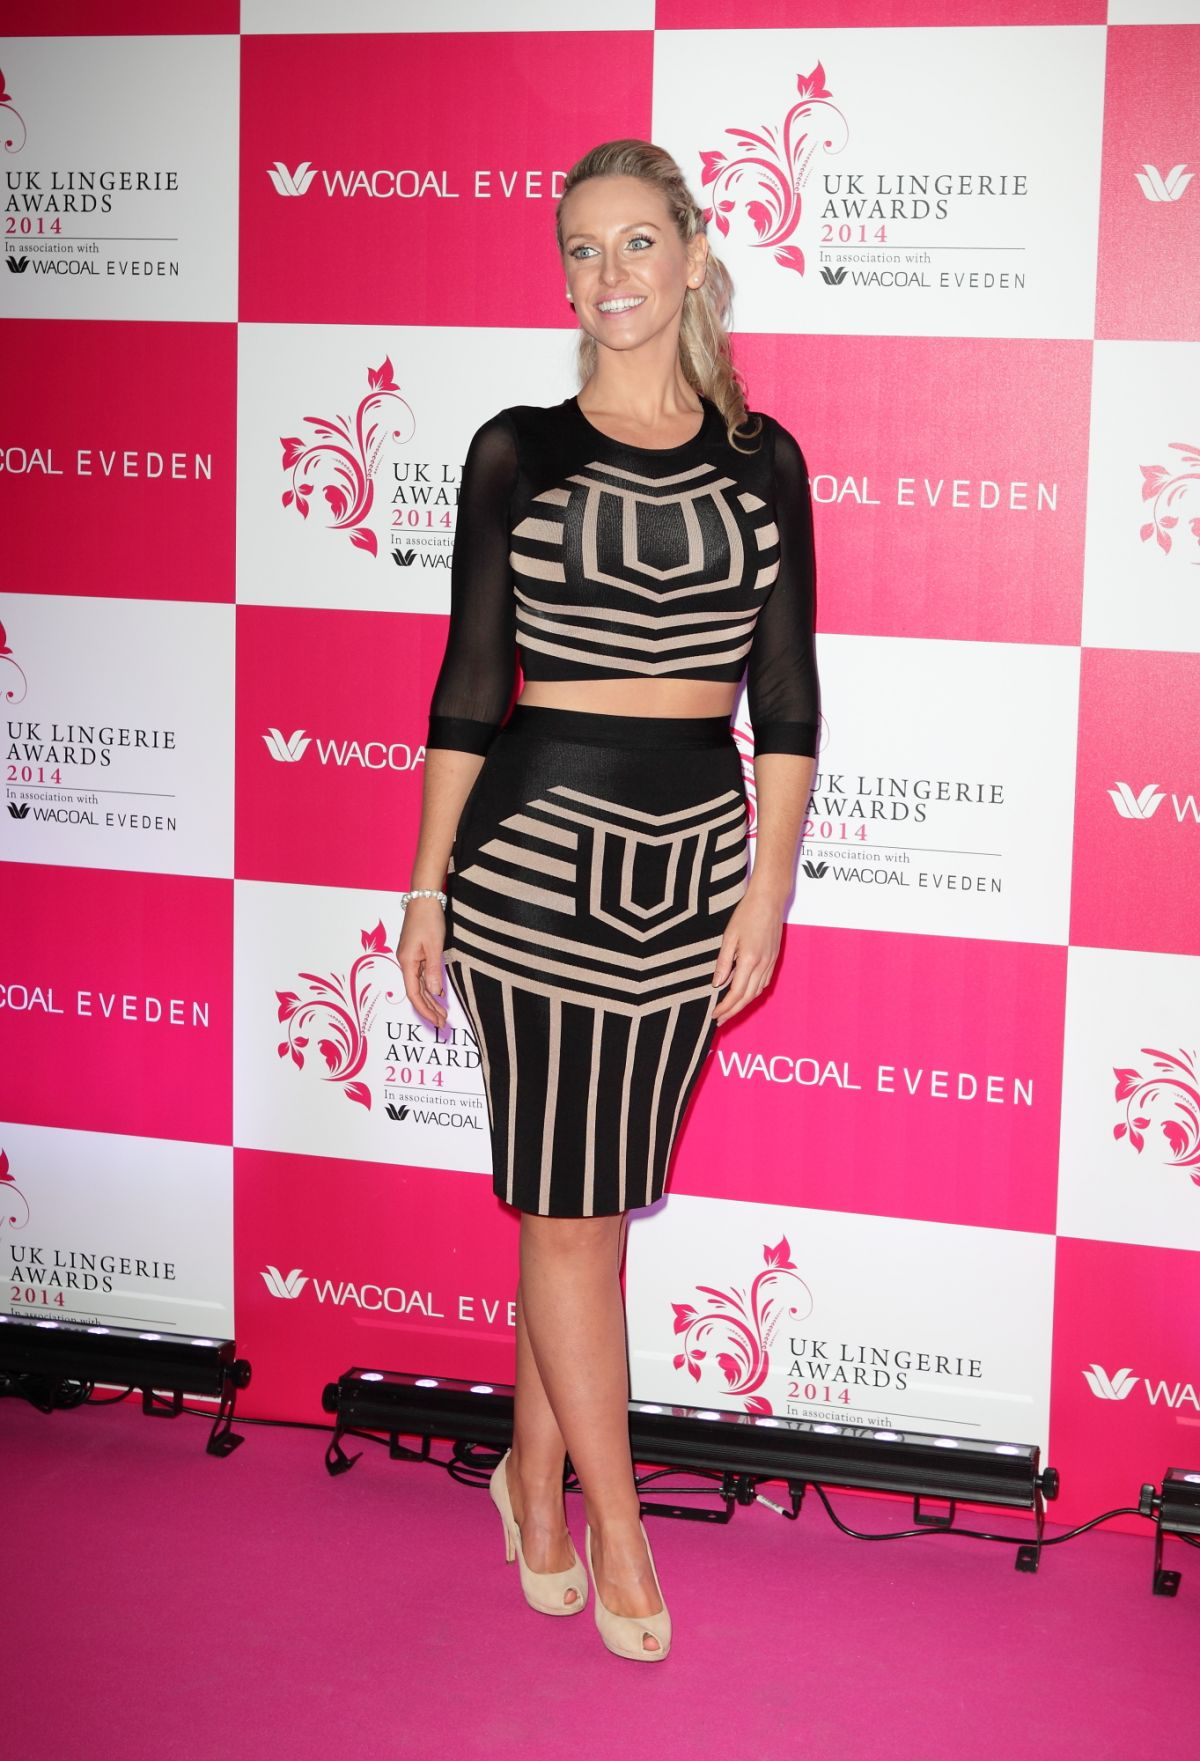 JOSIE GIBSON at 2014 UK Lingerie Awards in London